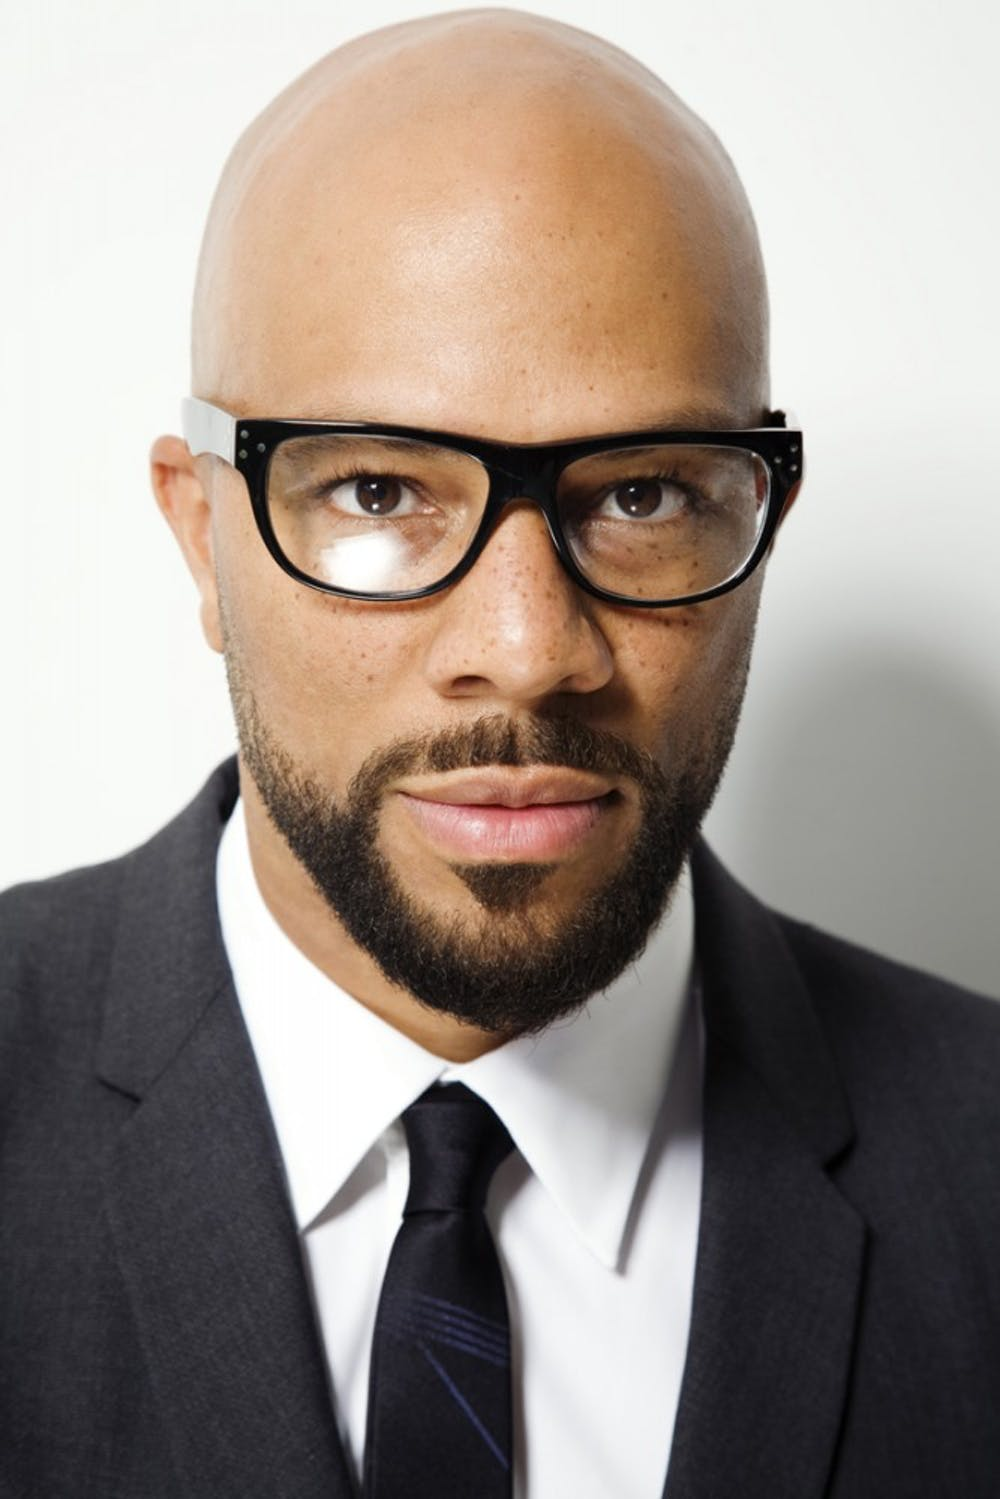 """KPU to host musician and actor Lonnie """"Common"""" Lynn"""